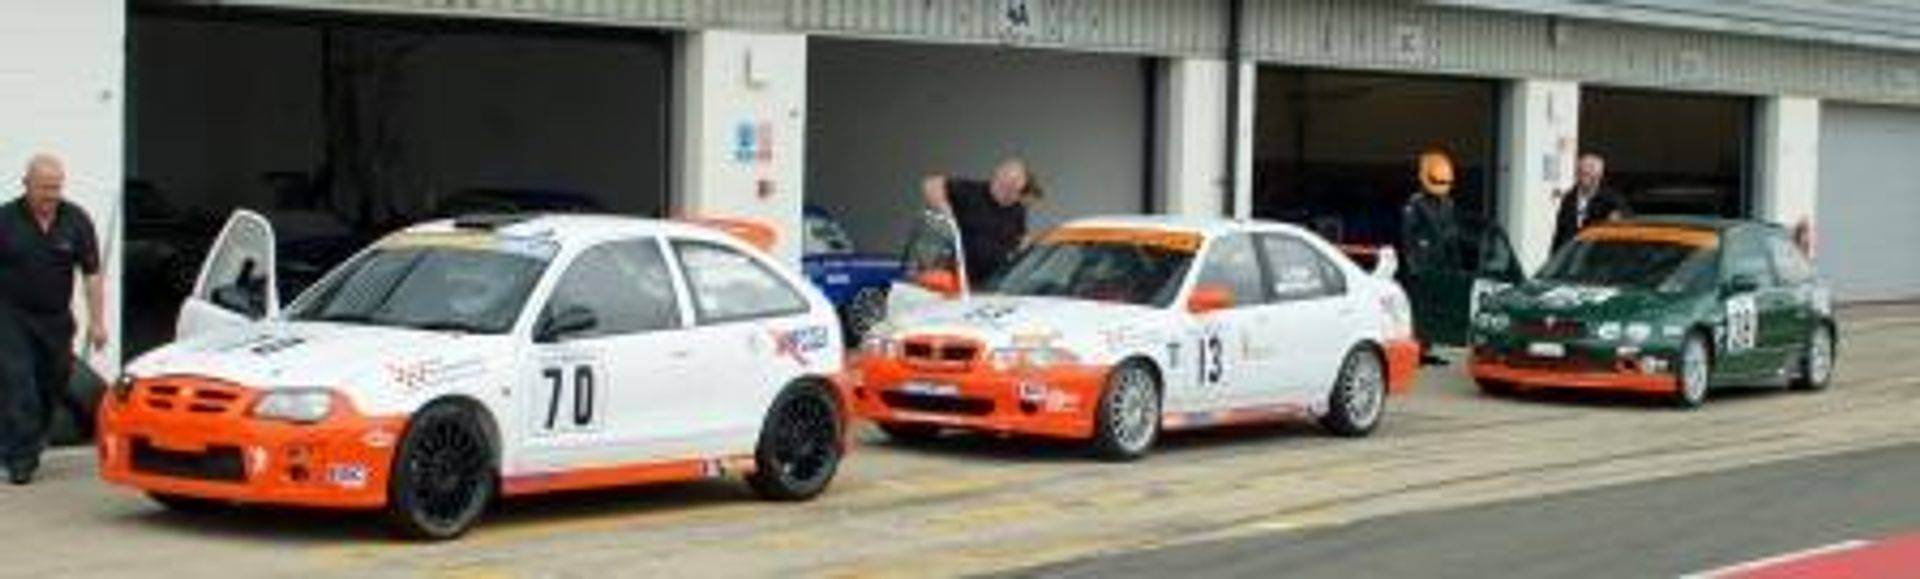 Vulcan Racing team cars MGZS Peter Burchill, MGZR 190 Dan Ludlow & MGZR 160 Dave Brown